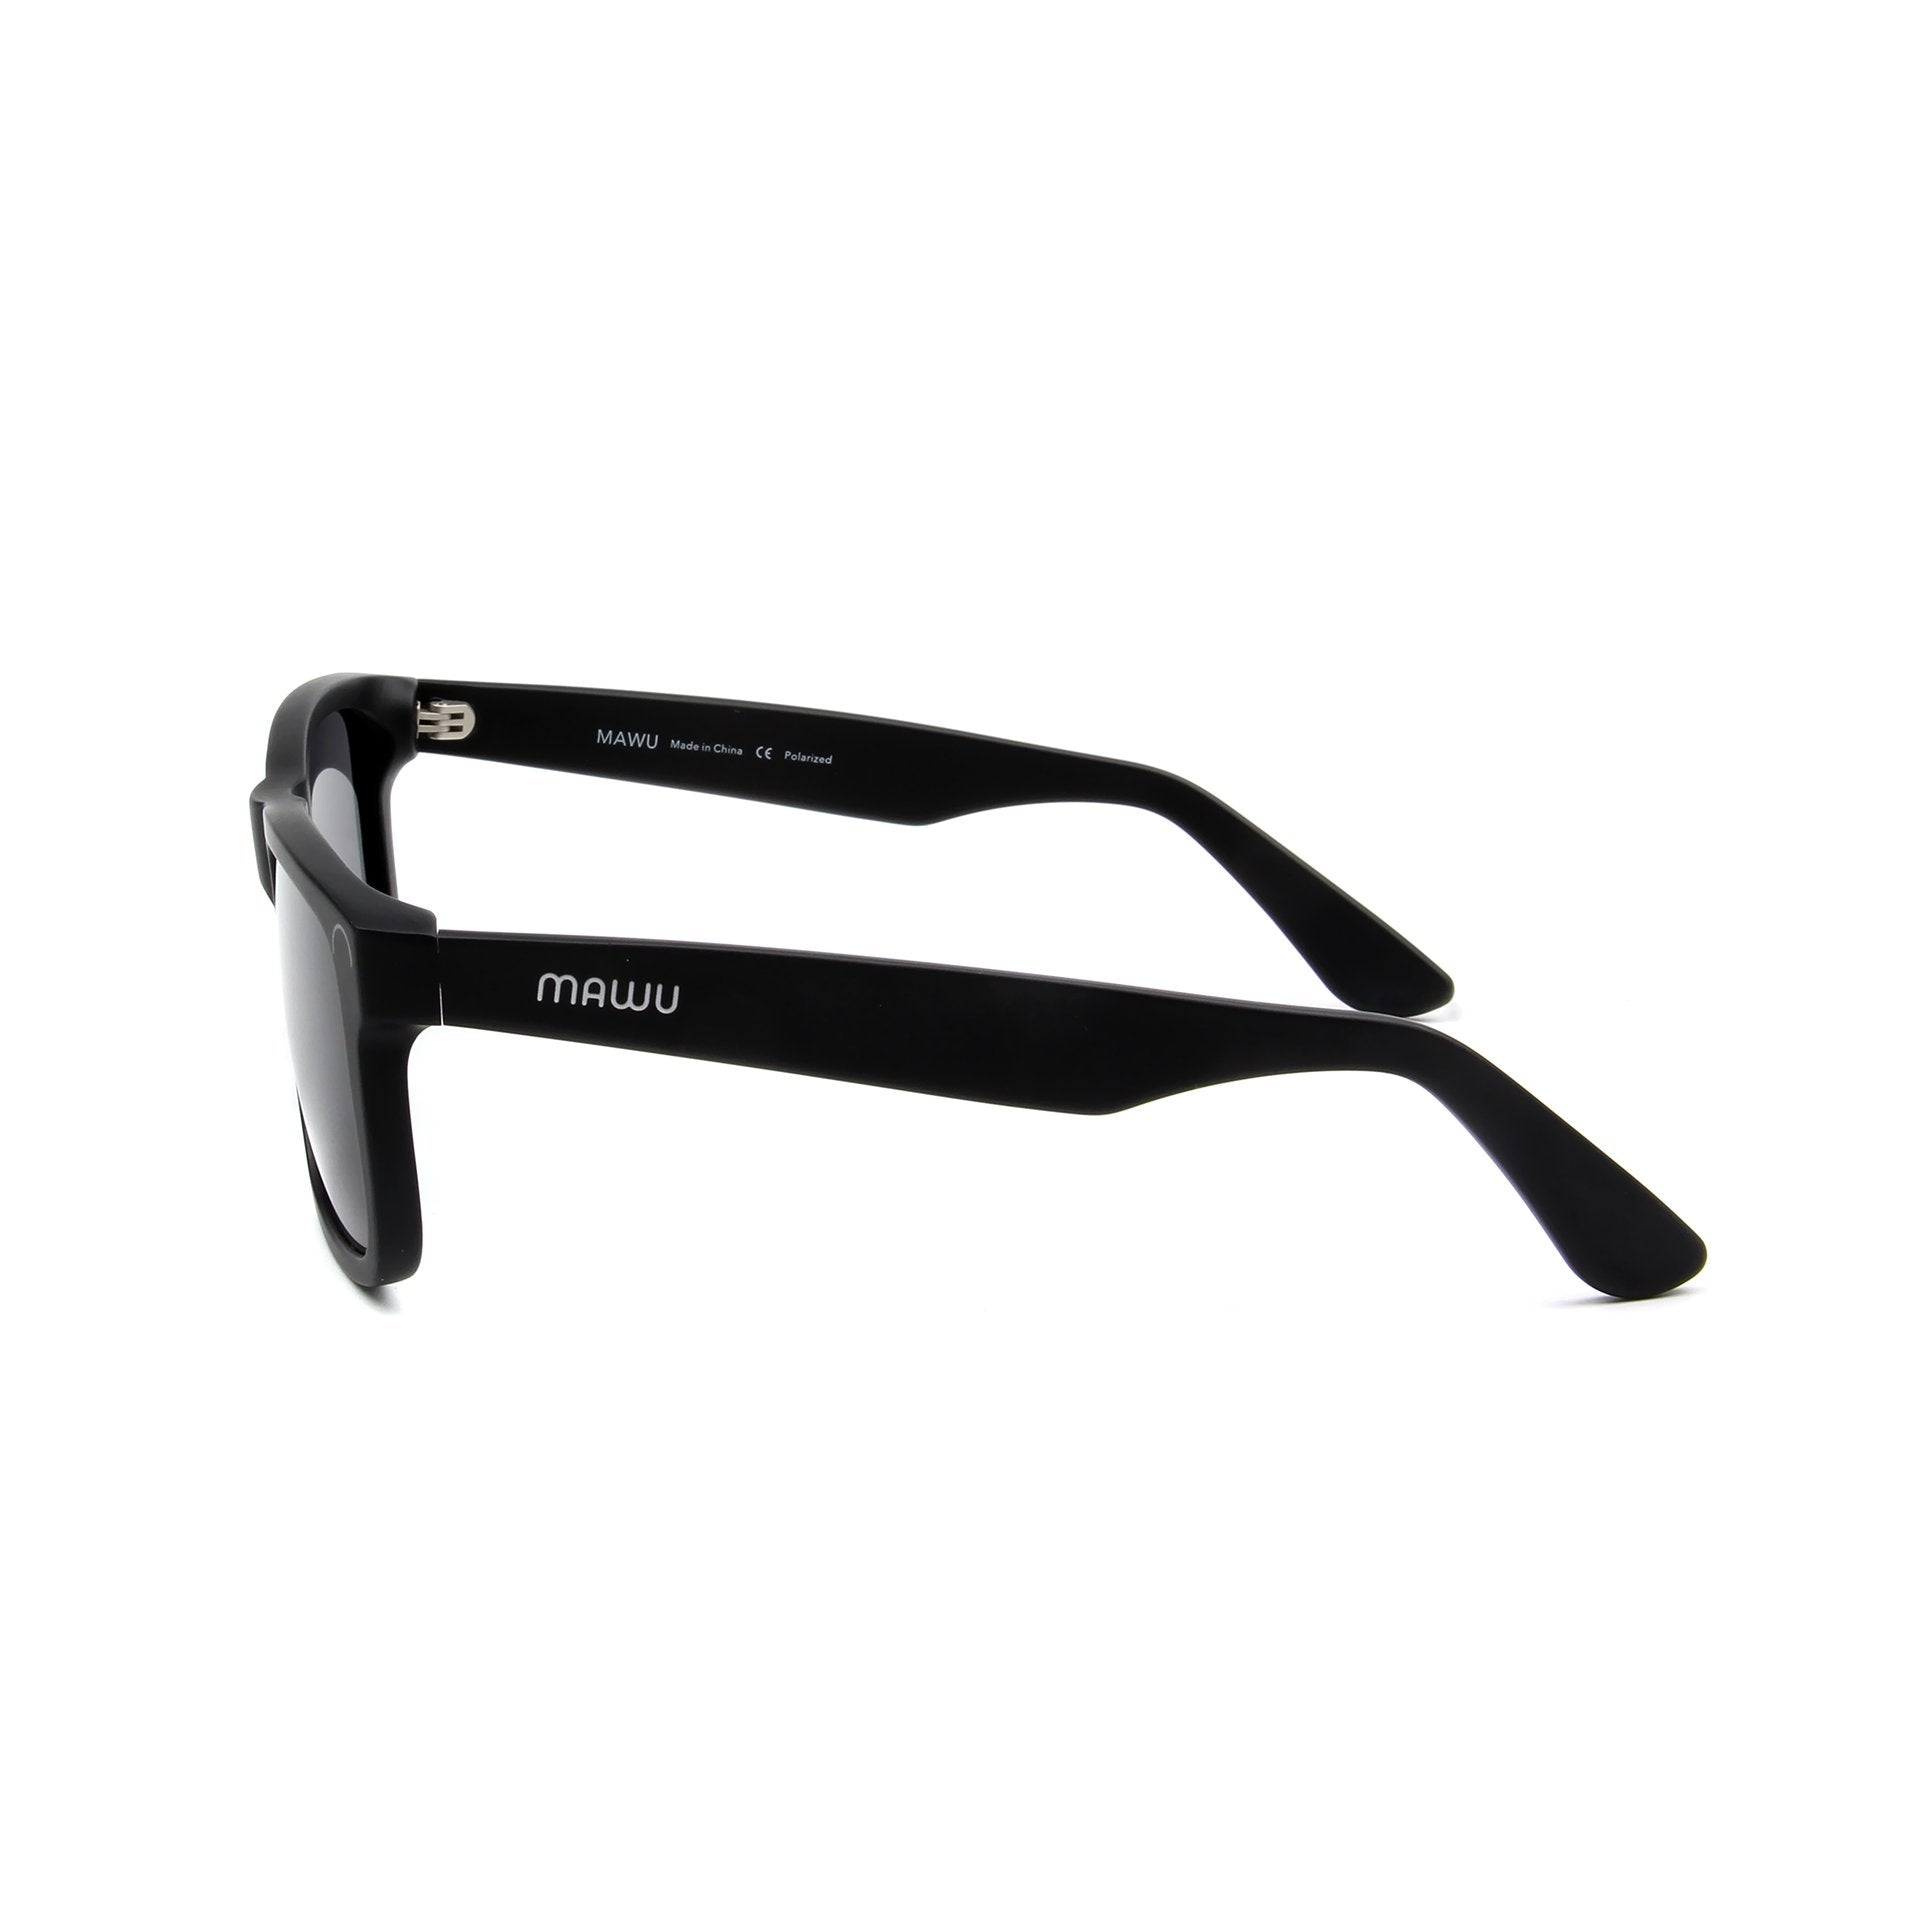 Corsica Matte Black - Side View - Grey lens - Mawu Sunglasses